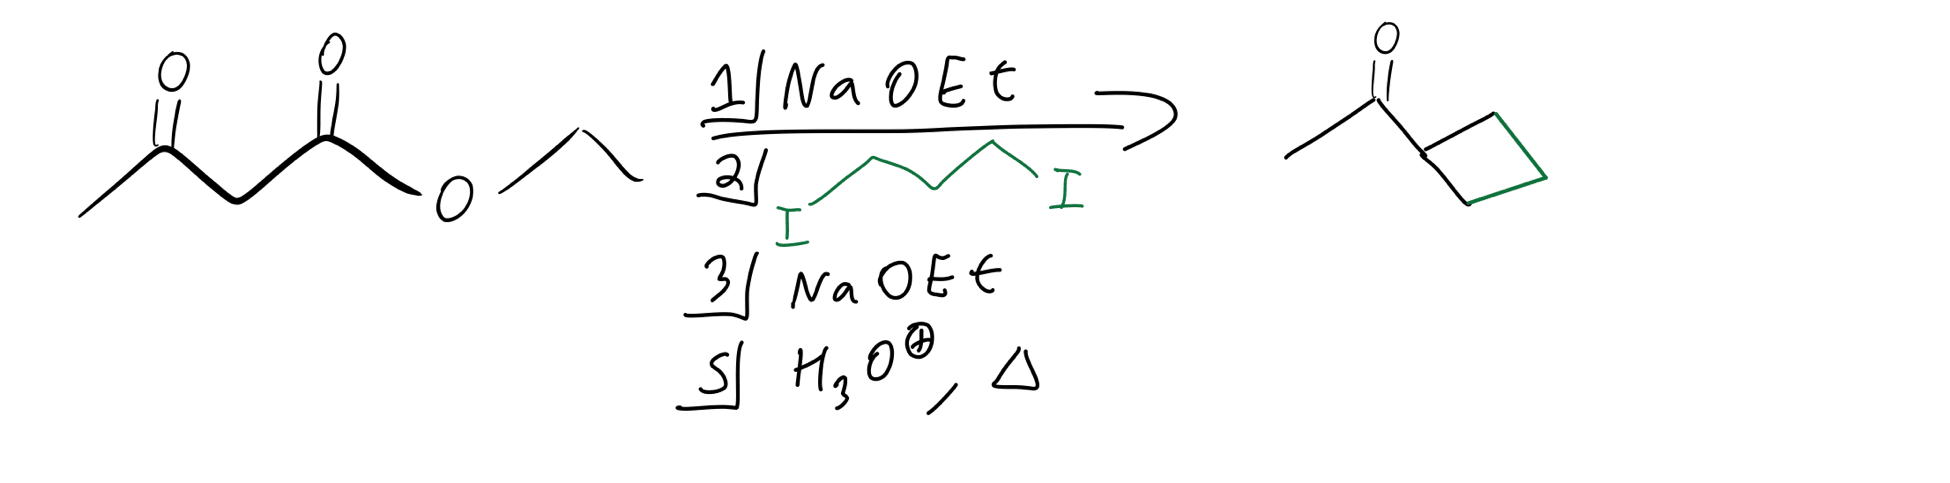 Cyclic-alkylation-reagents